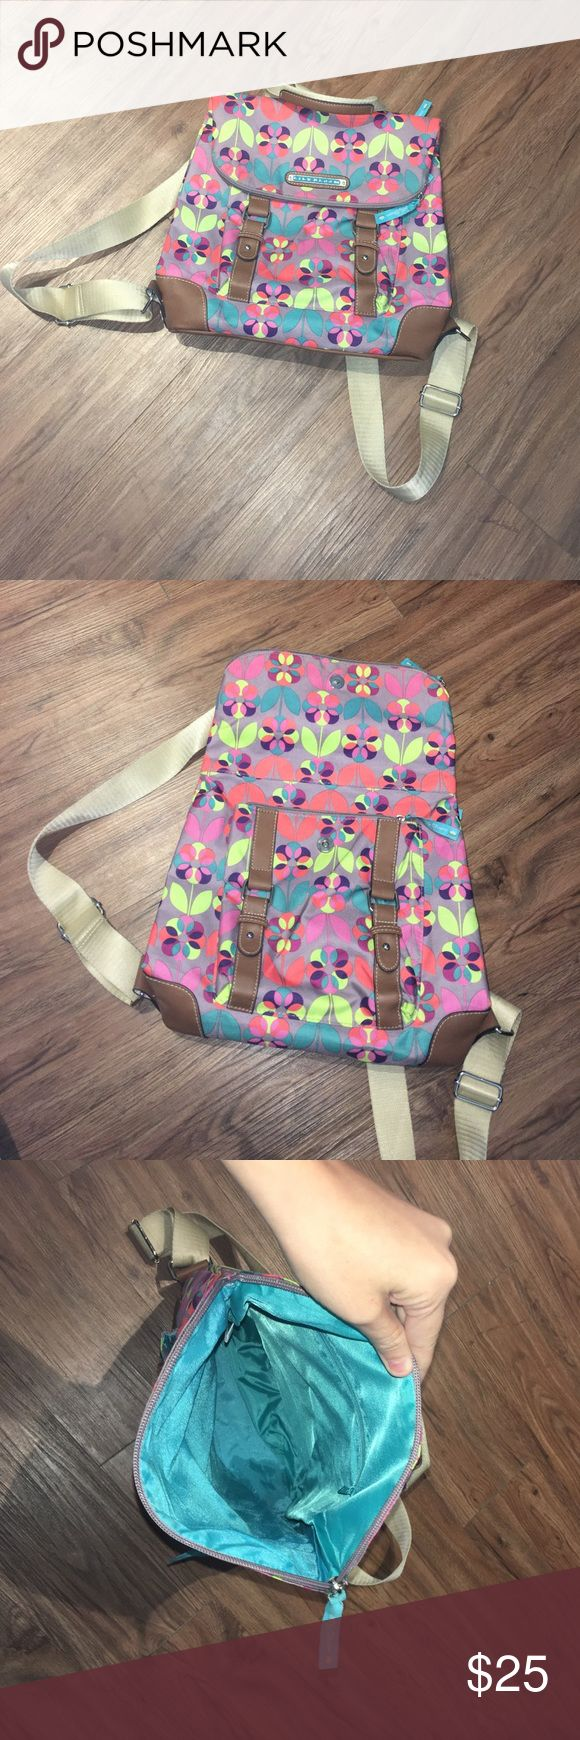 Lily Bloom Backpack Almost new Lily Bloom backpack! Used once for a vacation, but has no significant signs of wear except for small mark on strap (pictured). Contains 4 zippered compartments for storage and is PERFECT for vacationing. Lily Bloom Bags Backpacks